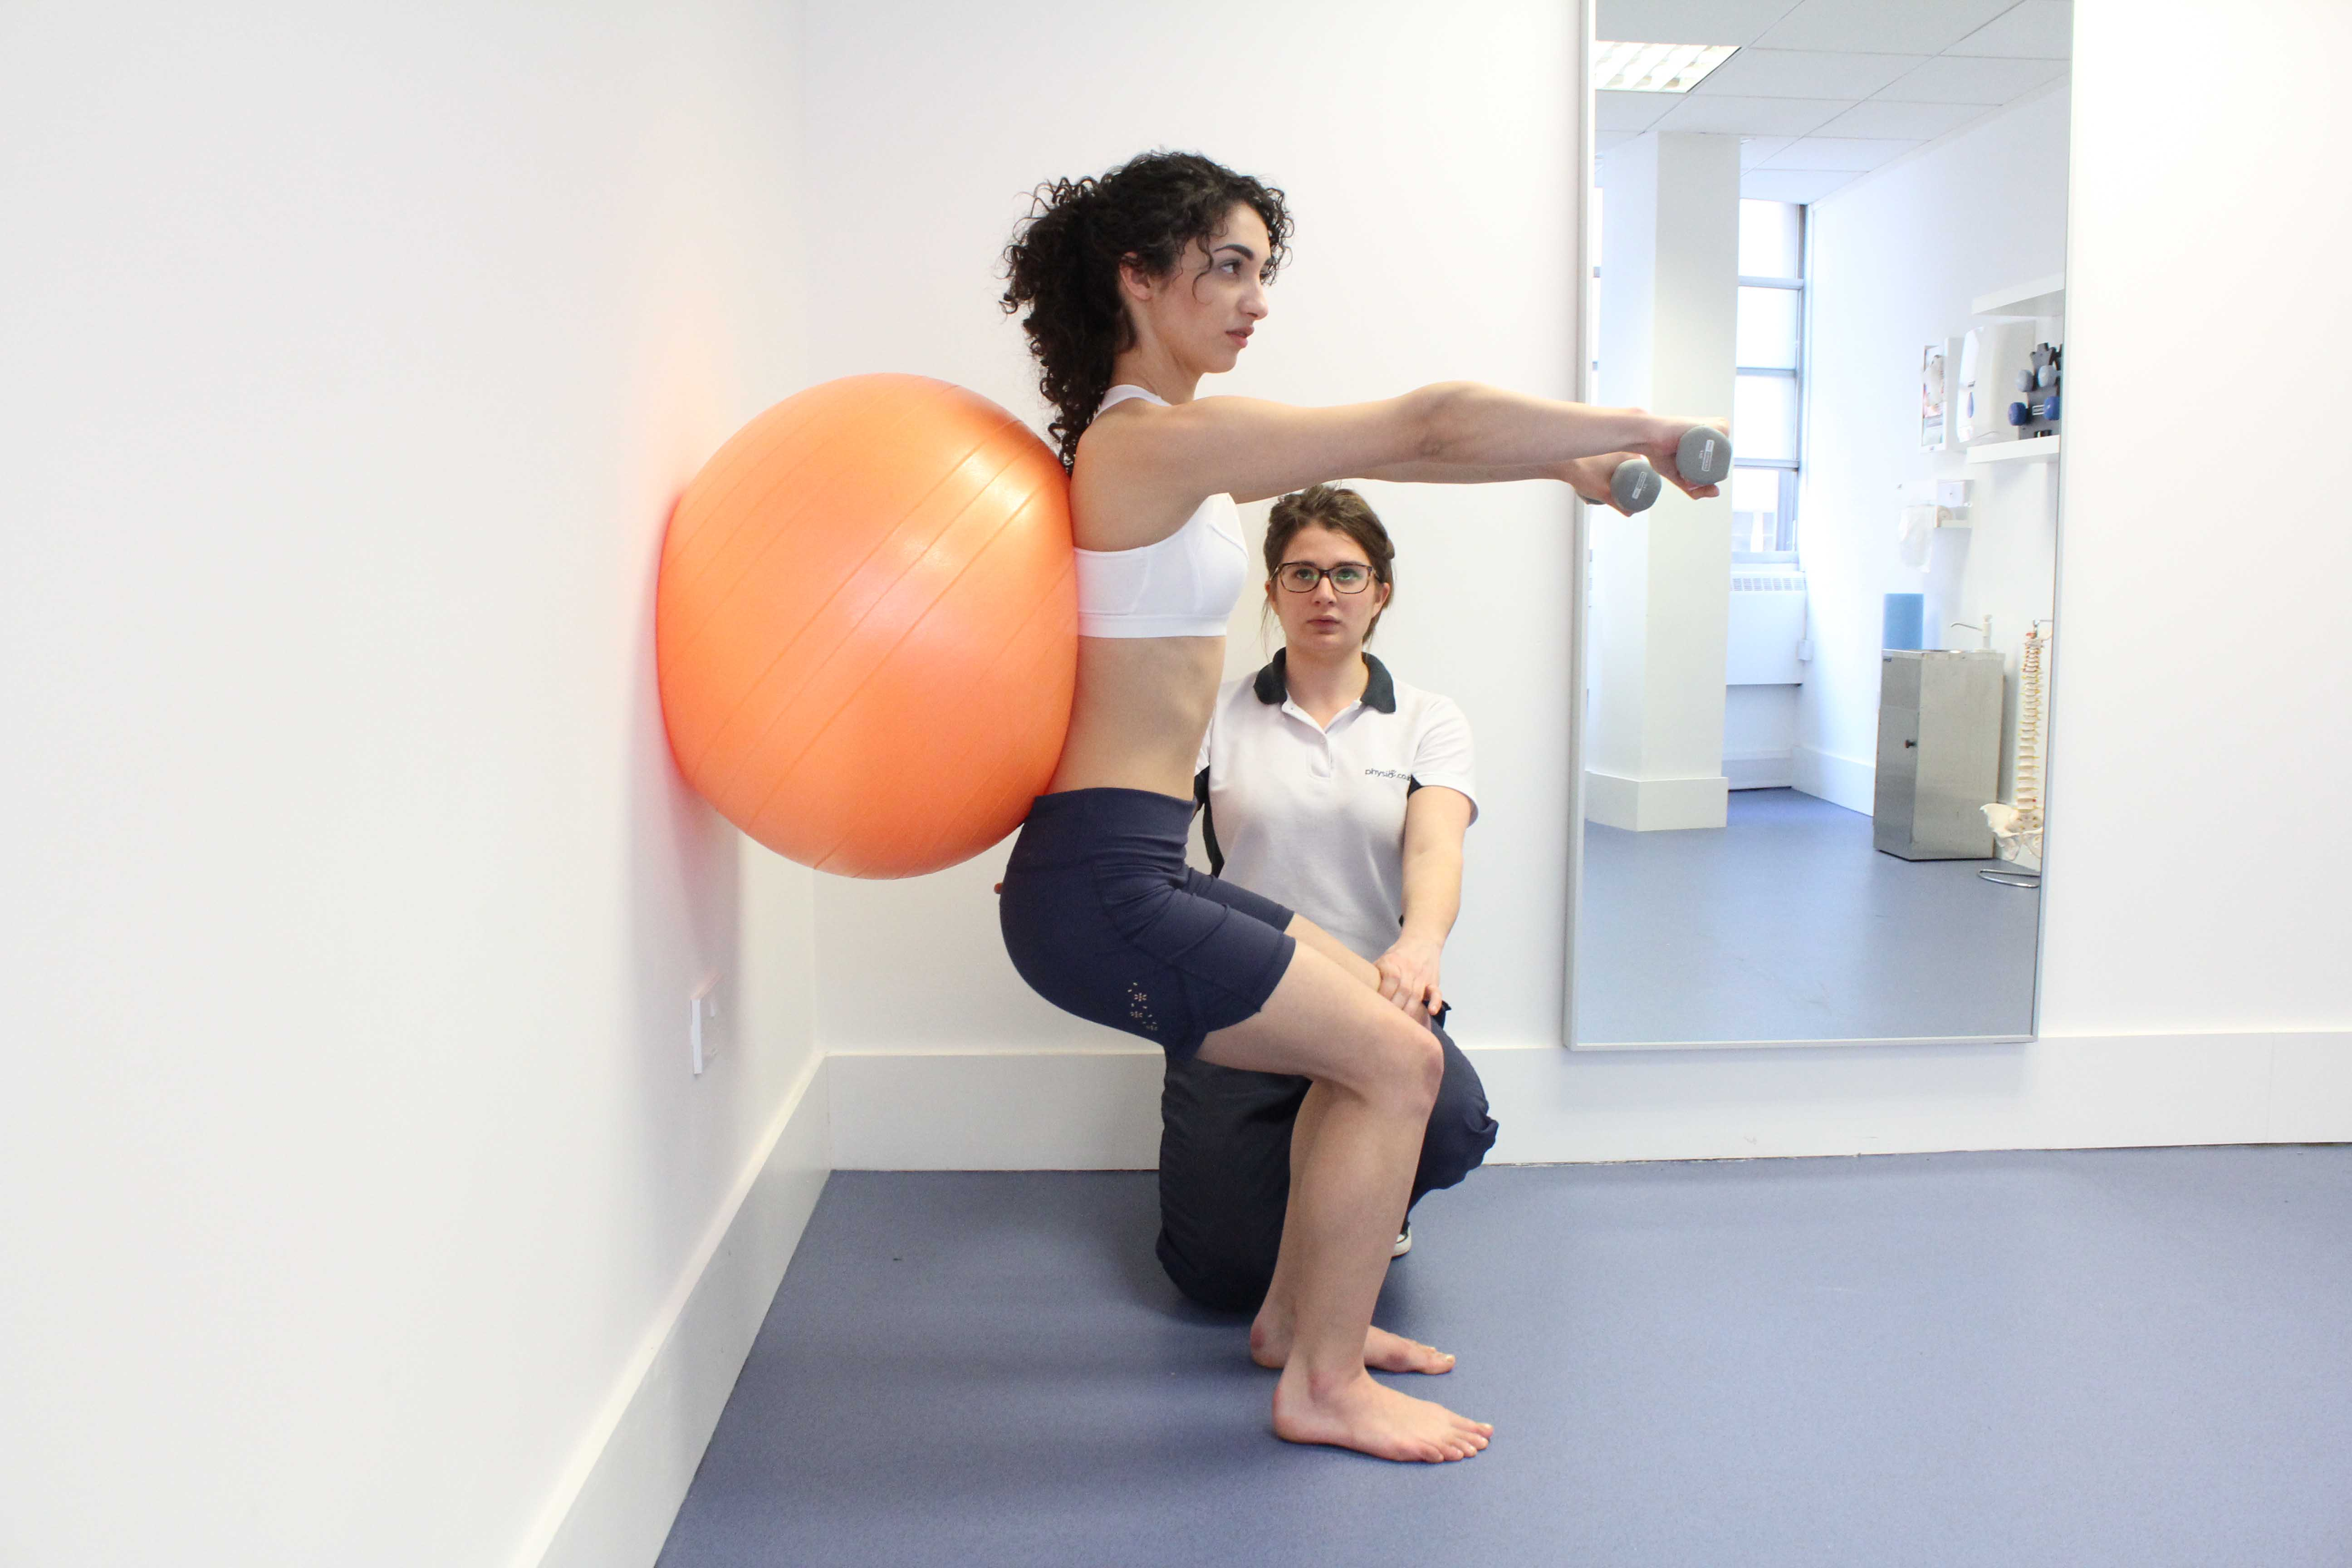 Rehabilitation exercises supervised by specialist musculoskeletal physiotherapist